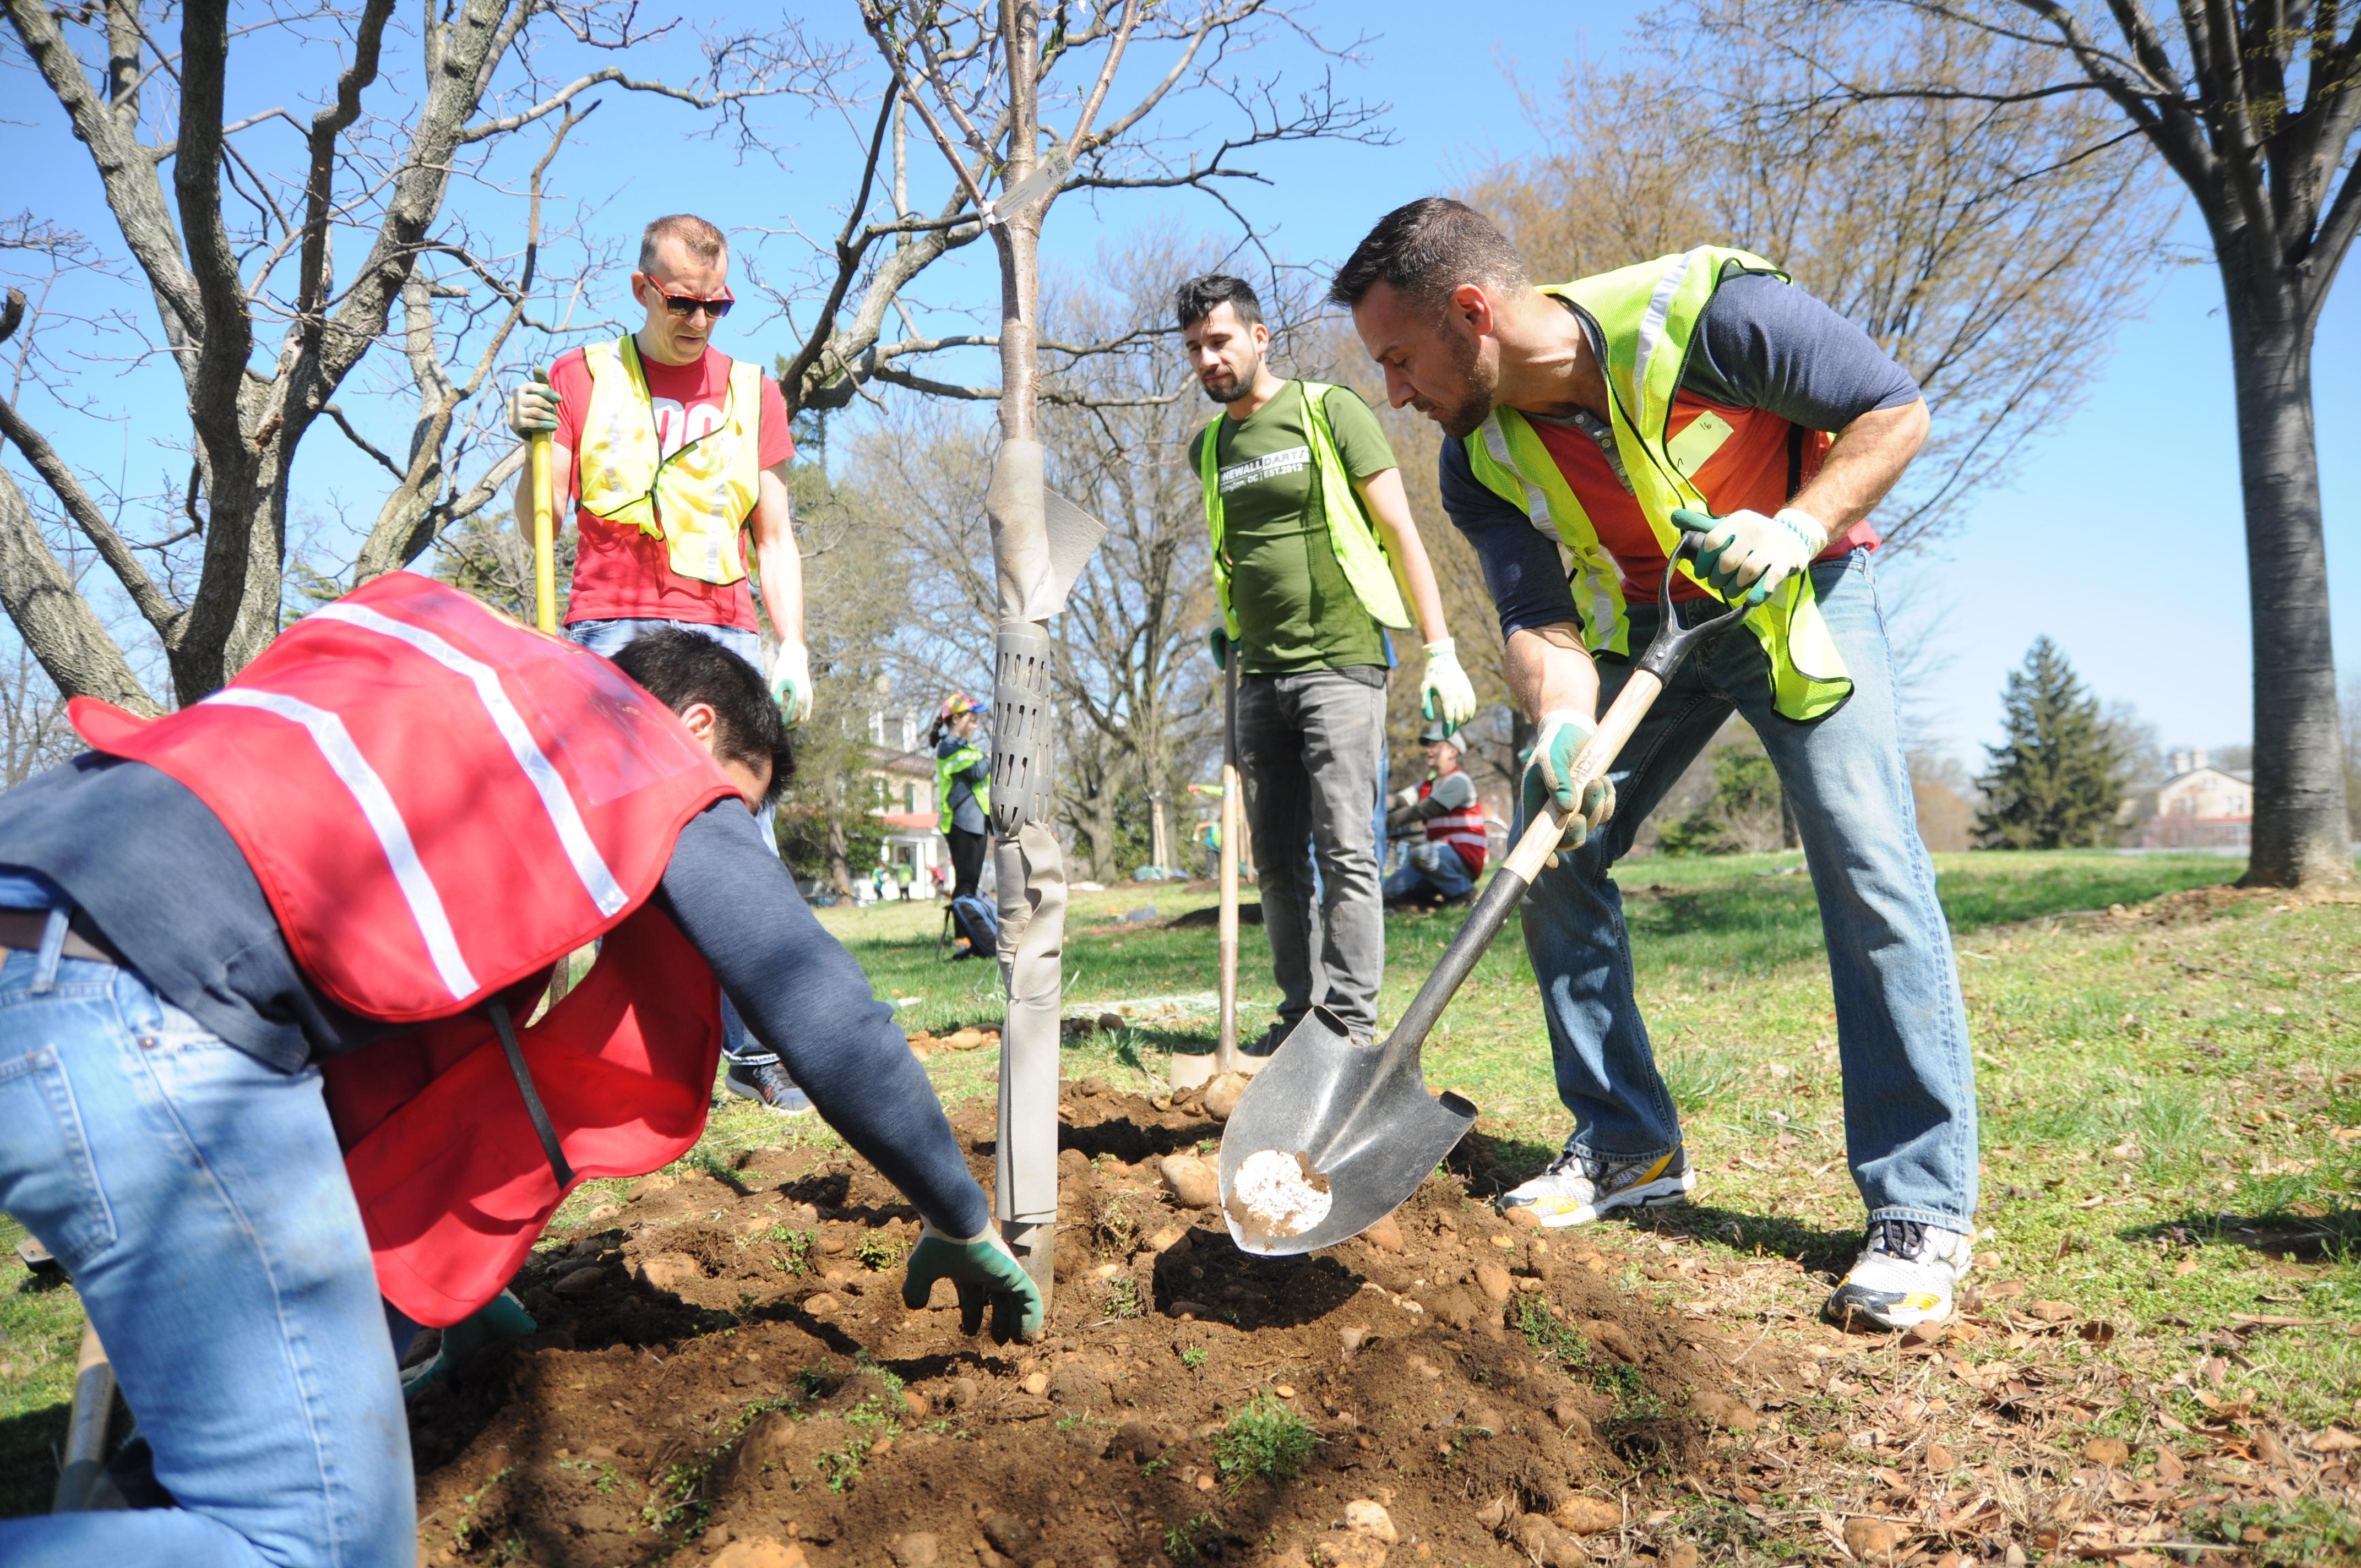 Preparation for Spring Tree Planting | Tree Doctors Inc